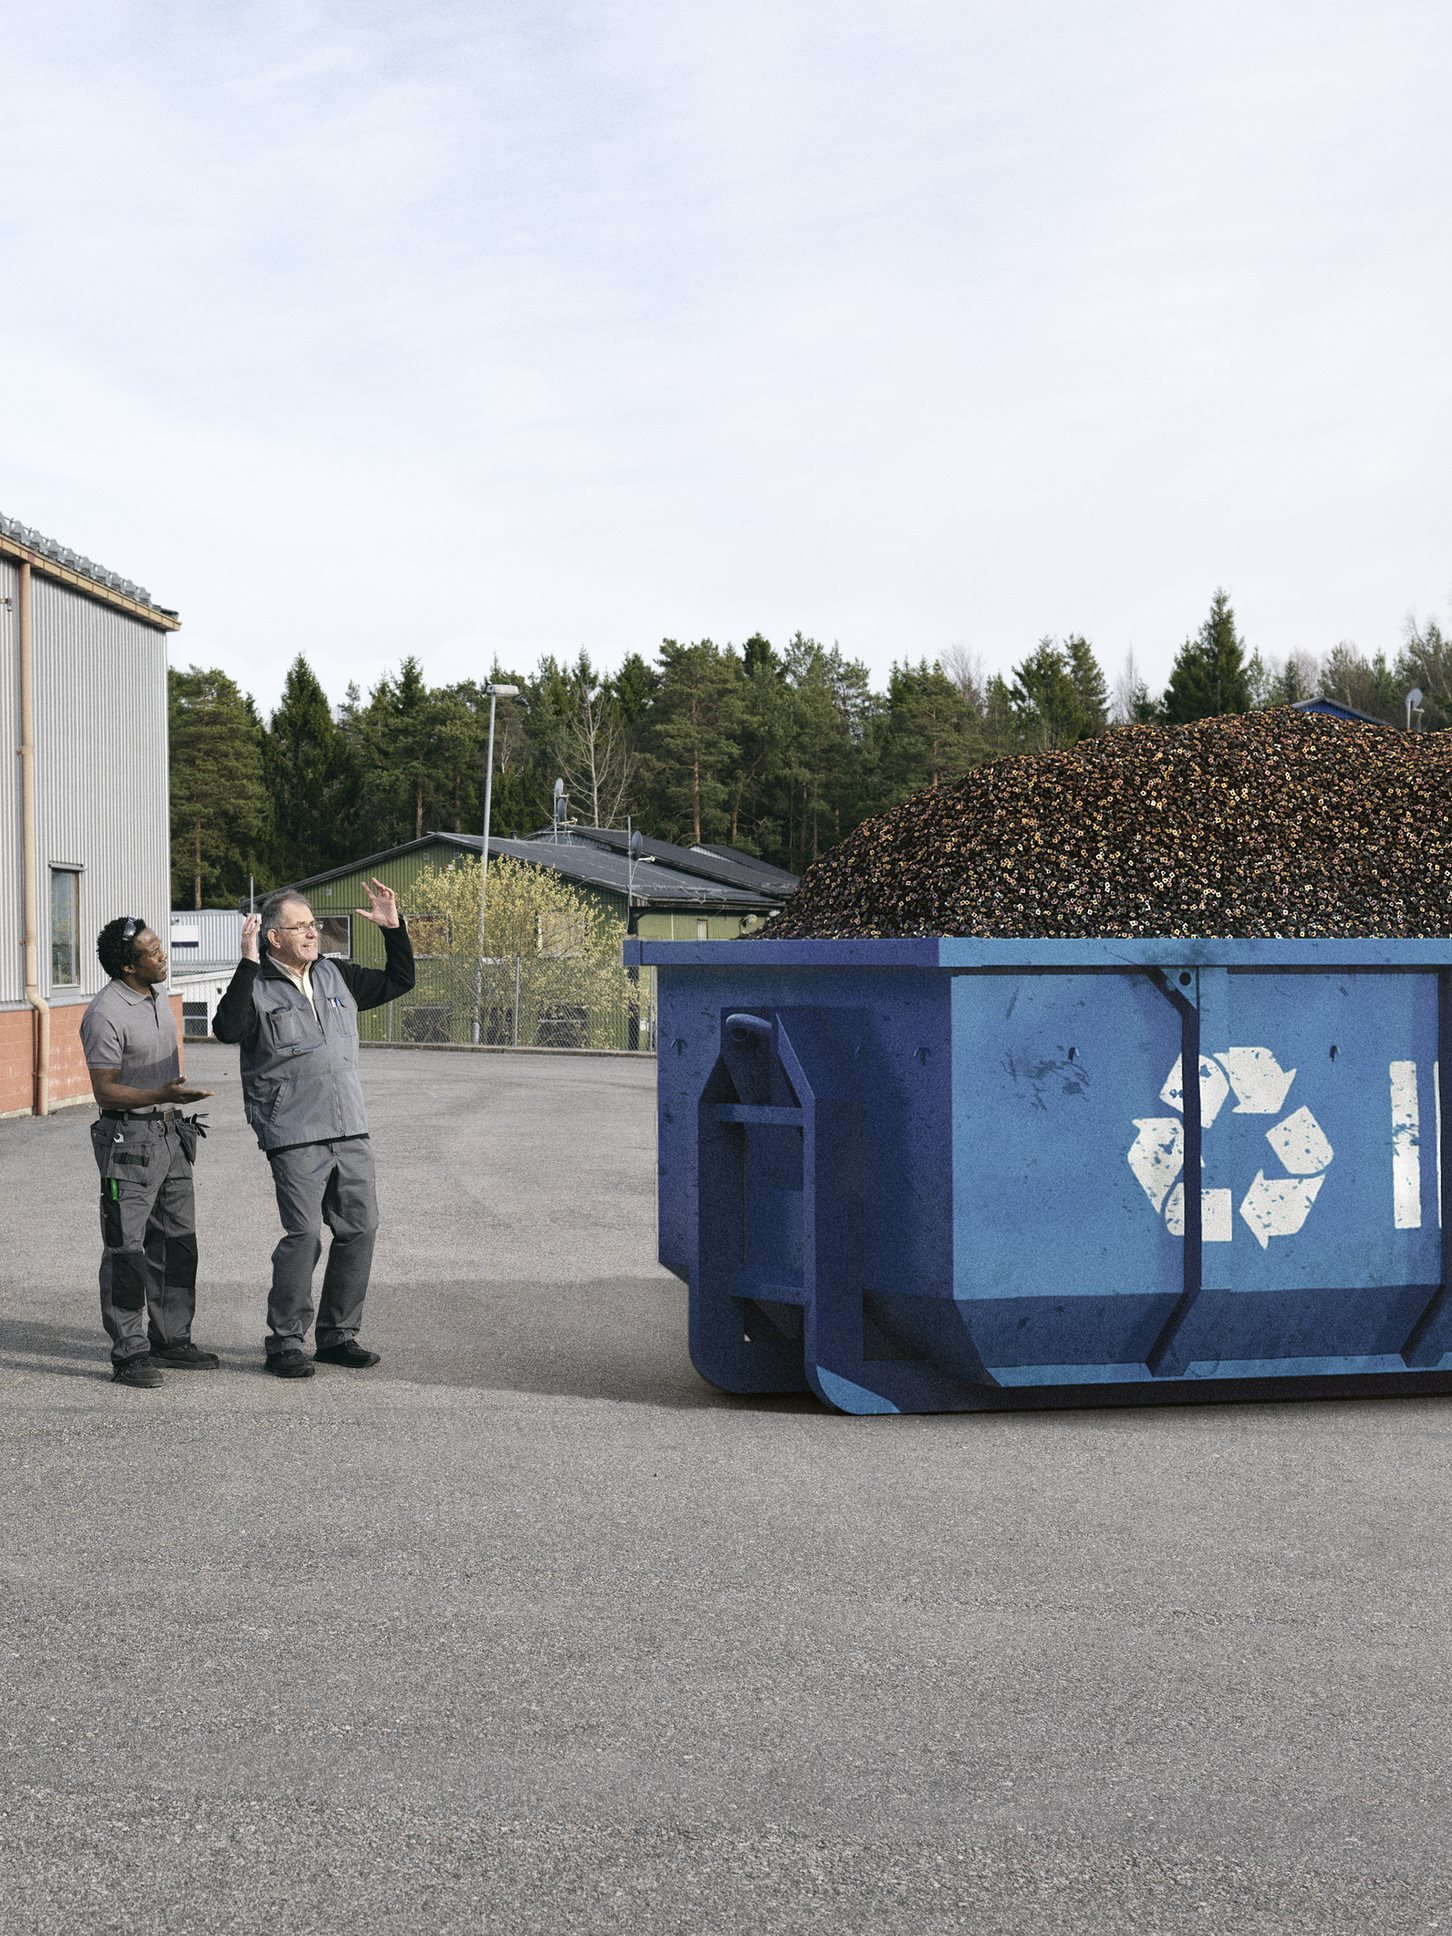 People_Standing_In_Front_Of_Recycling_Container.tif